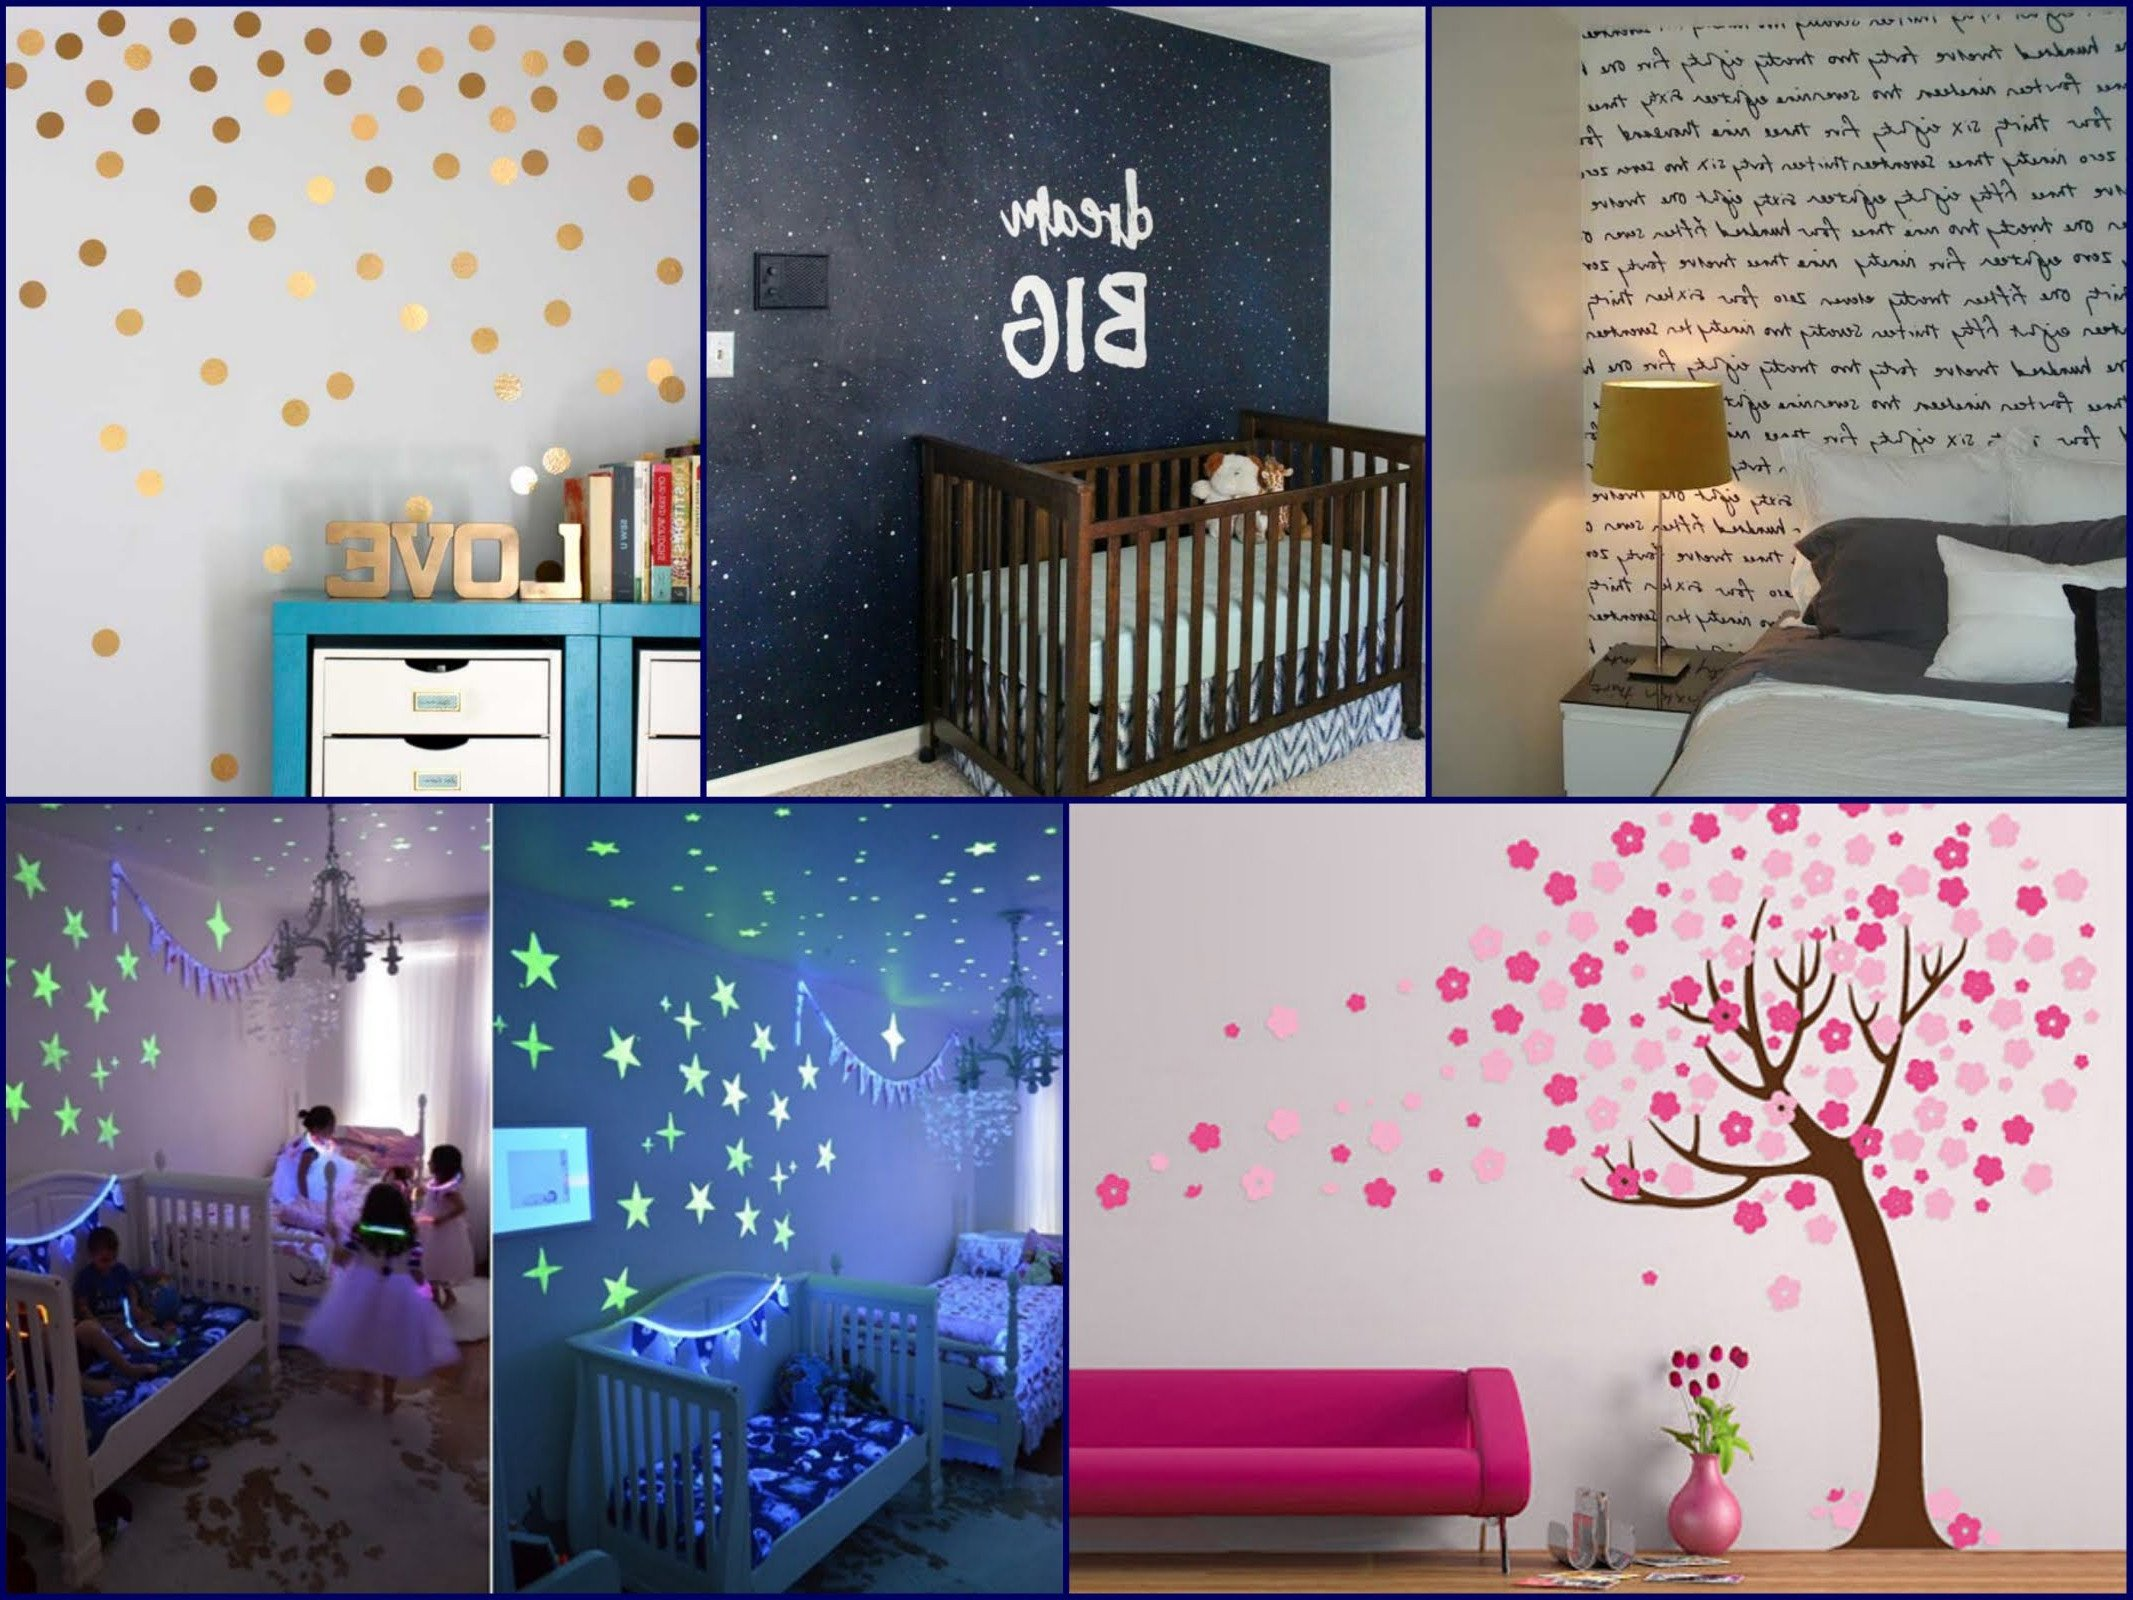 Homemade Wall Decoration Ideas for Bedroom Unique Decorative Wall Painting Ideas for Bedroom Diy Wall Painting